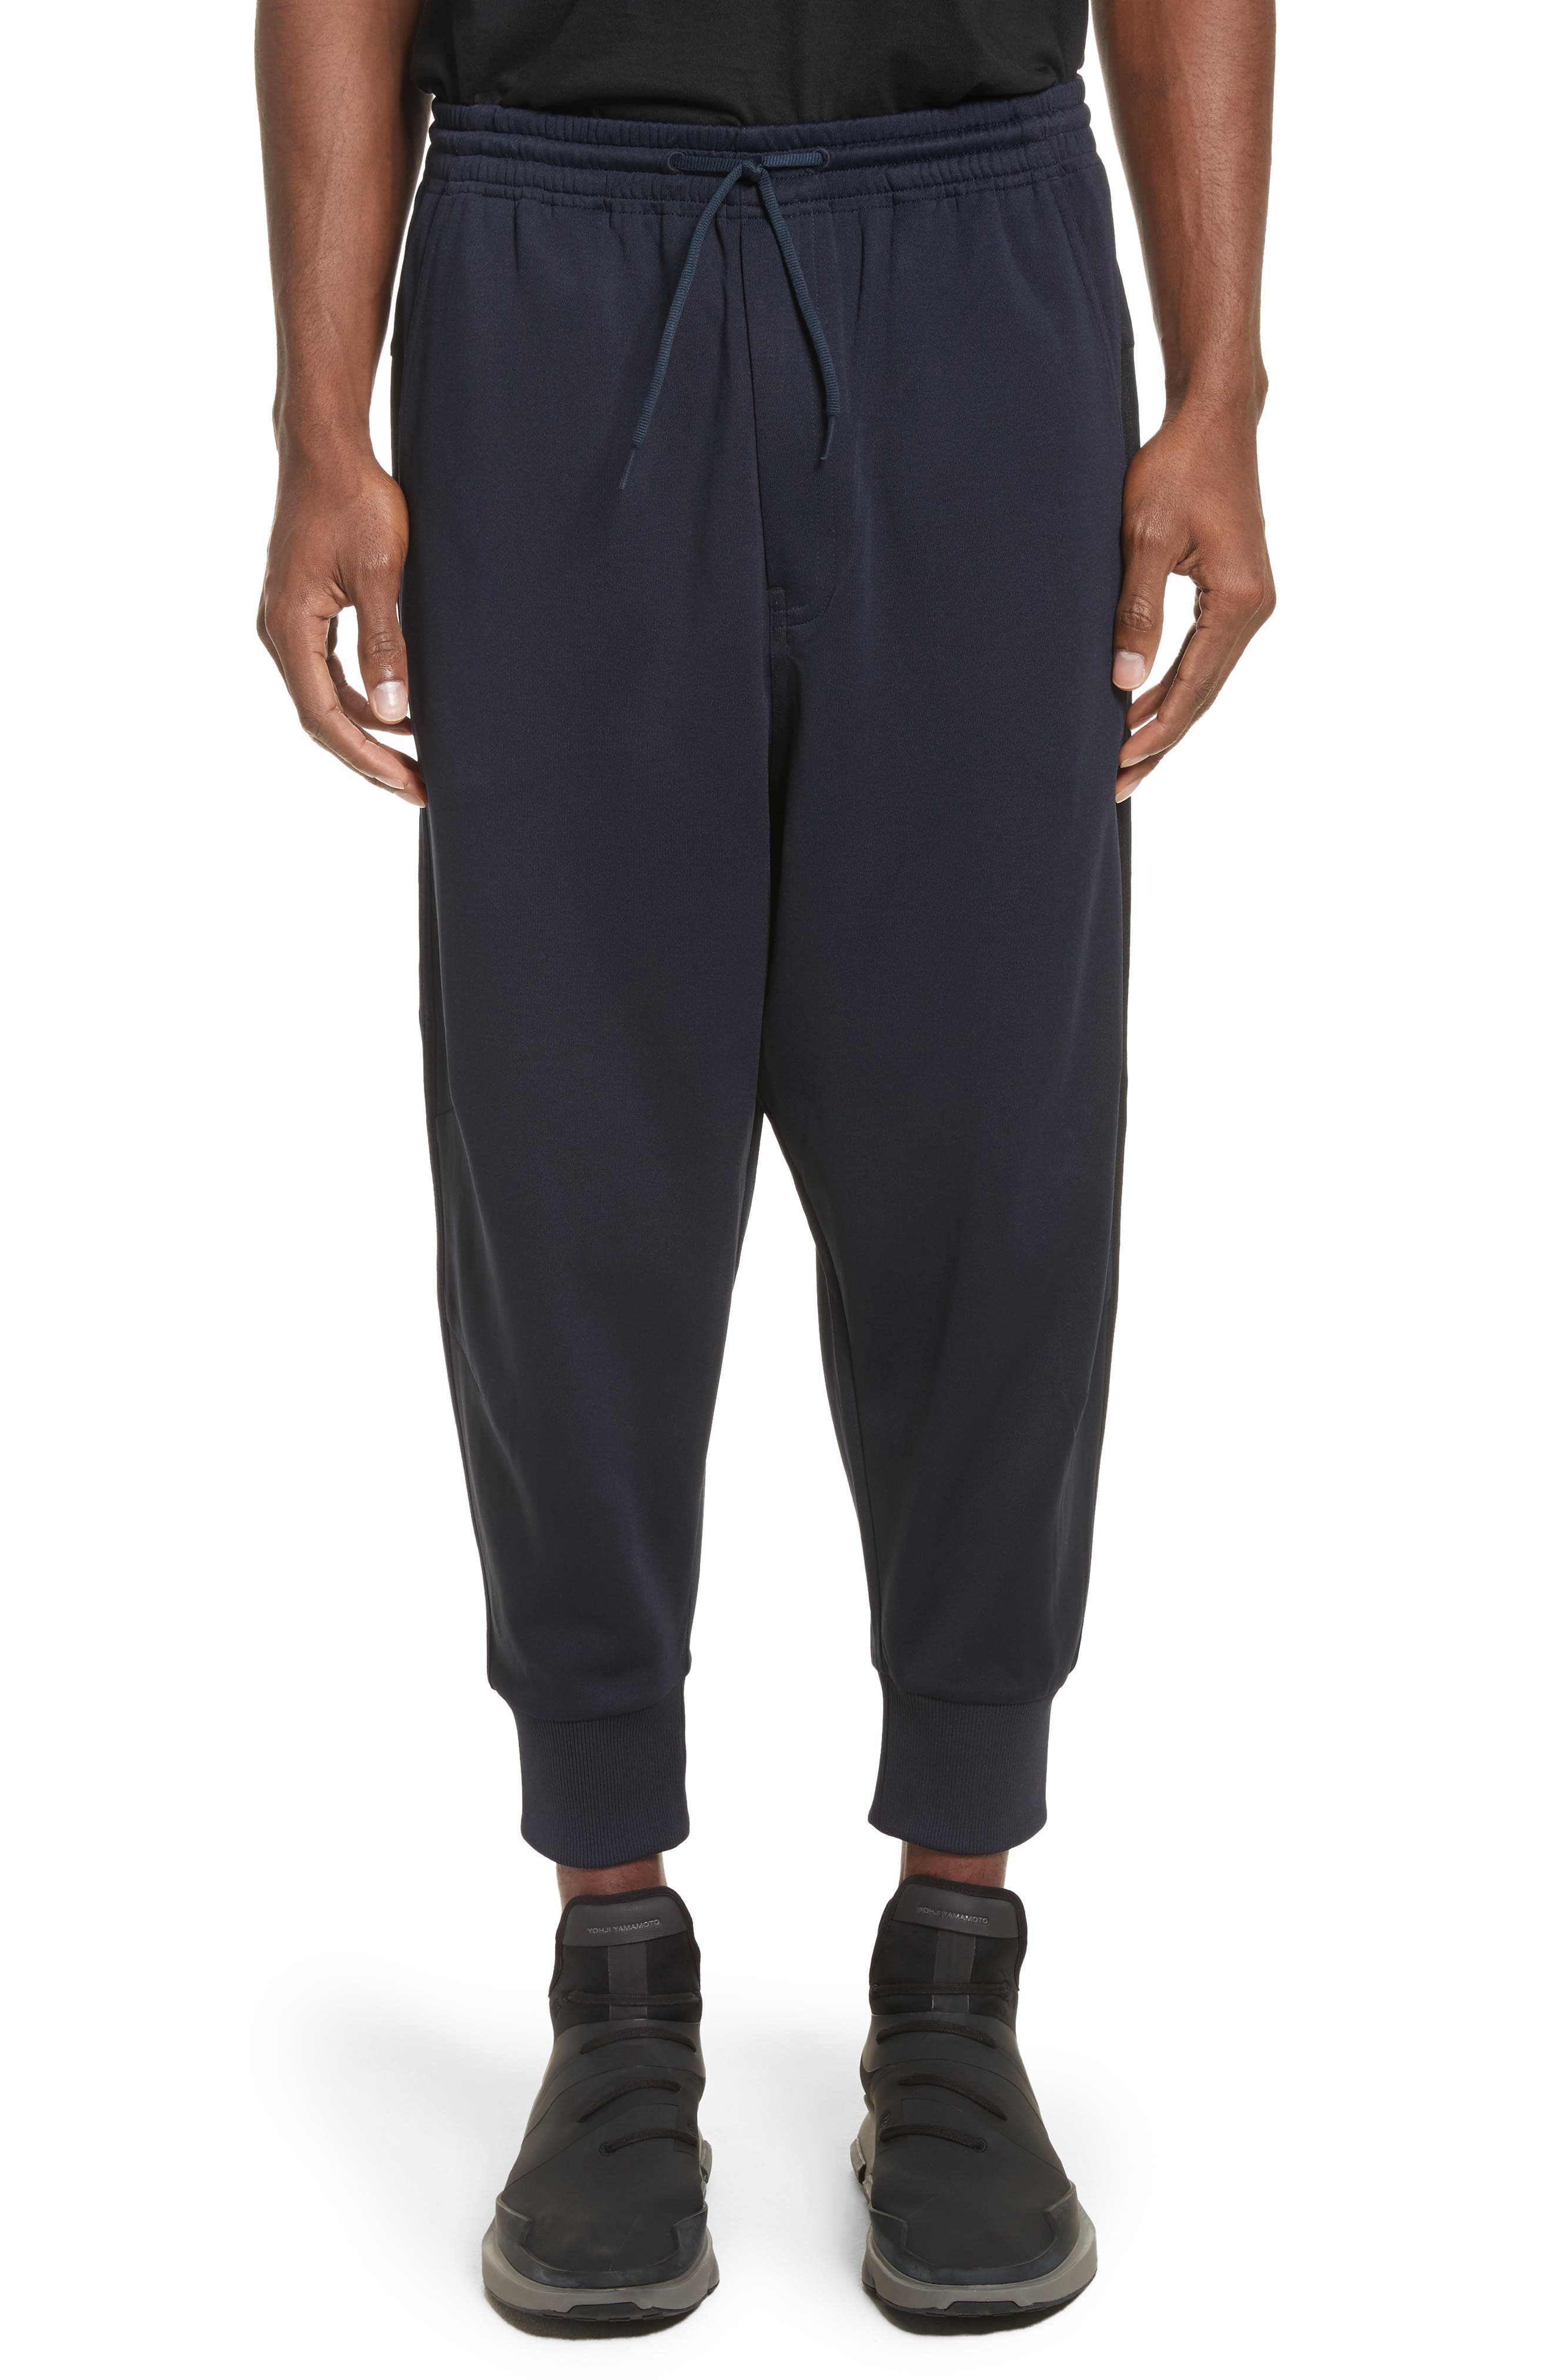 x adidas Cropped Track Pants,                         Main,                         color,